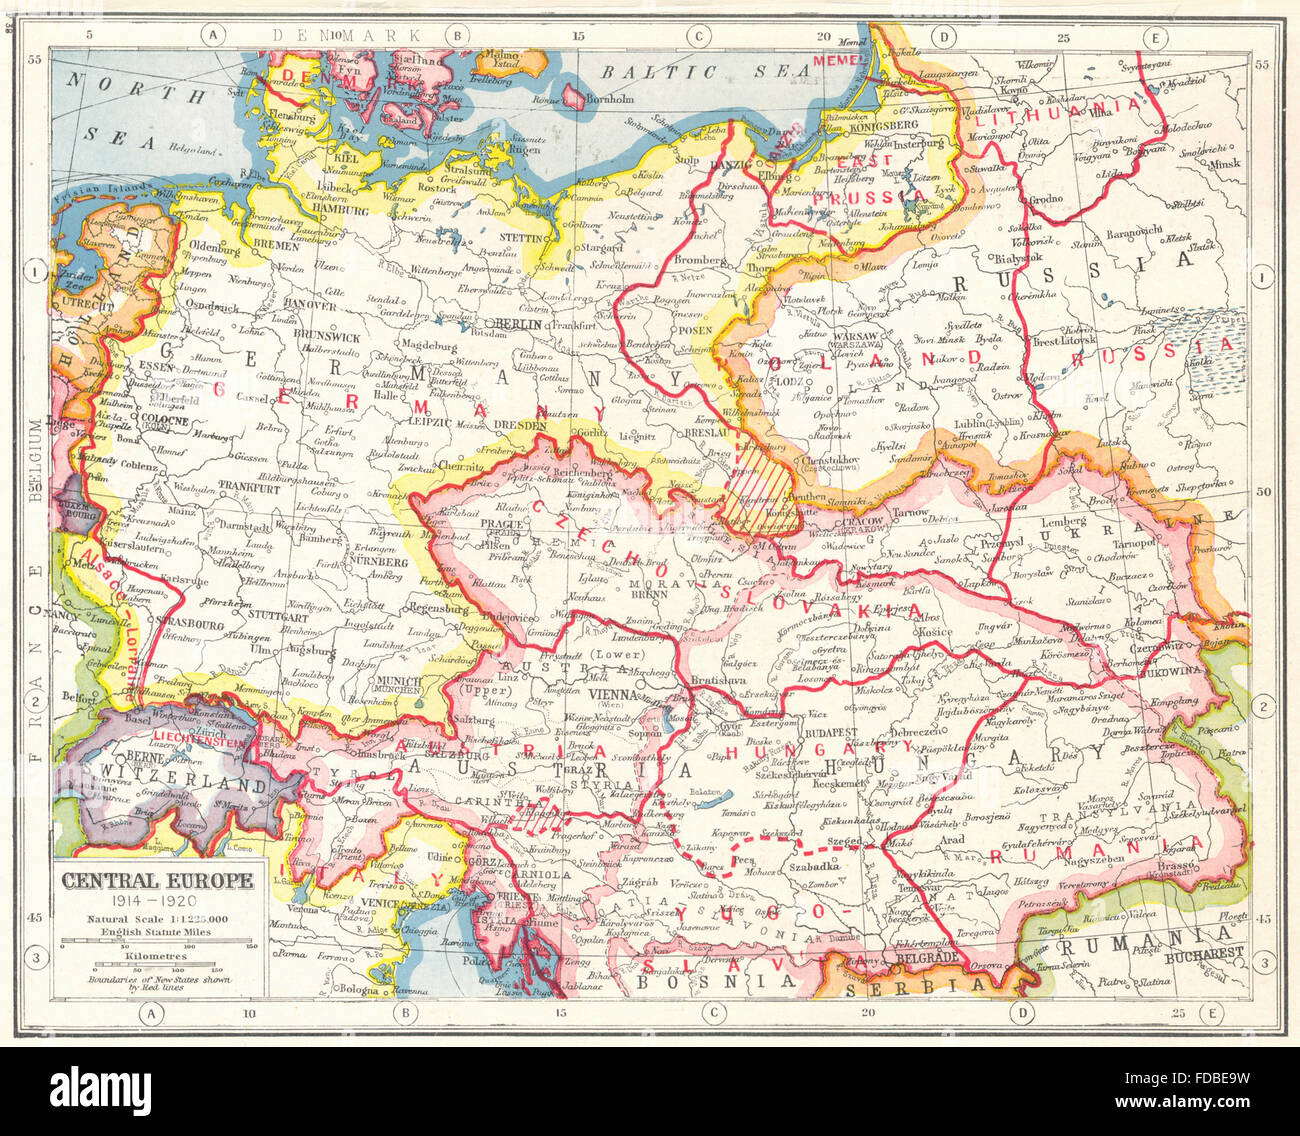 Europe 1914 Map Stock Photos & Europe 1914 Map Stock Images ...